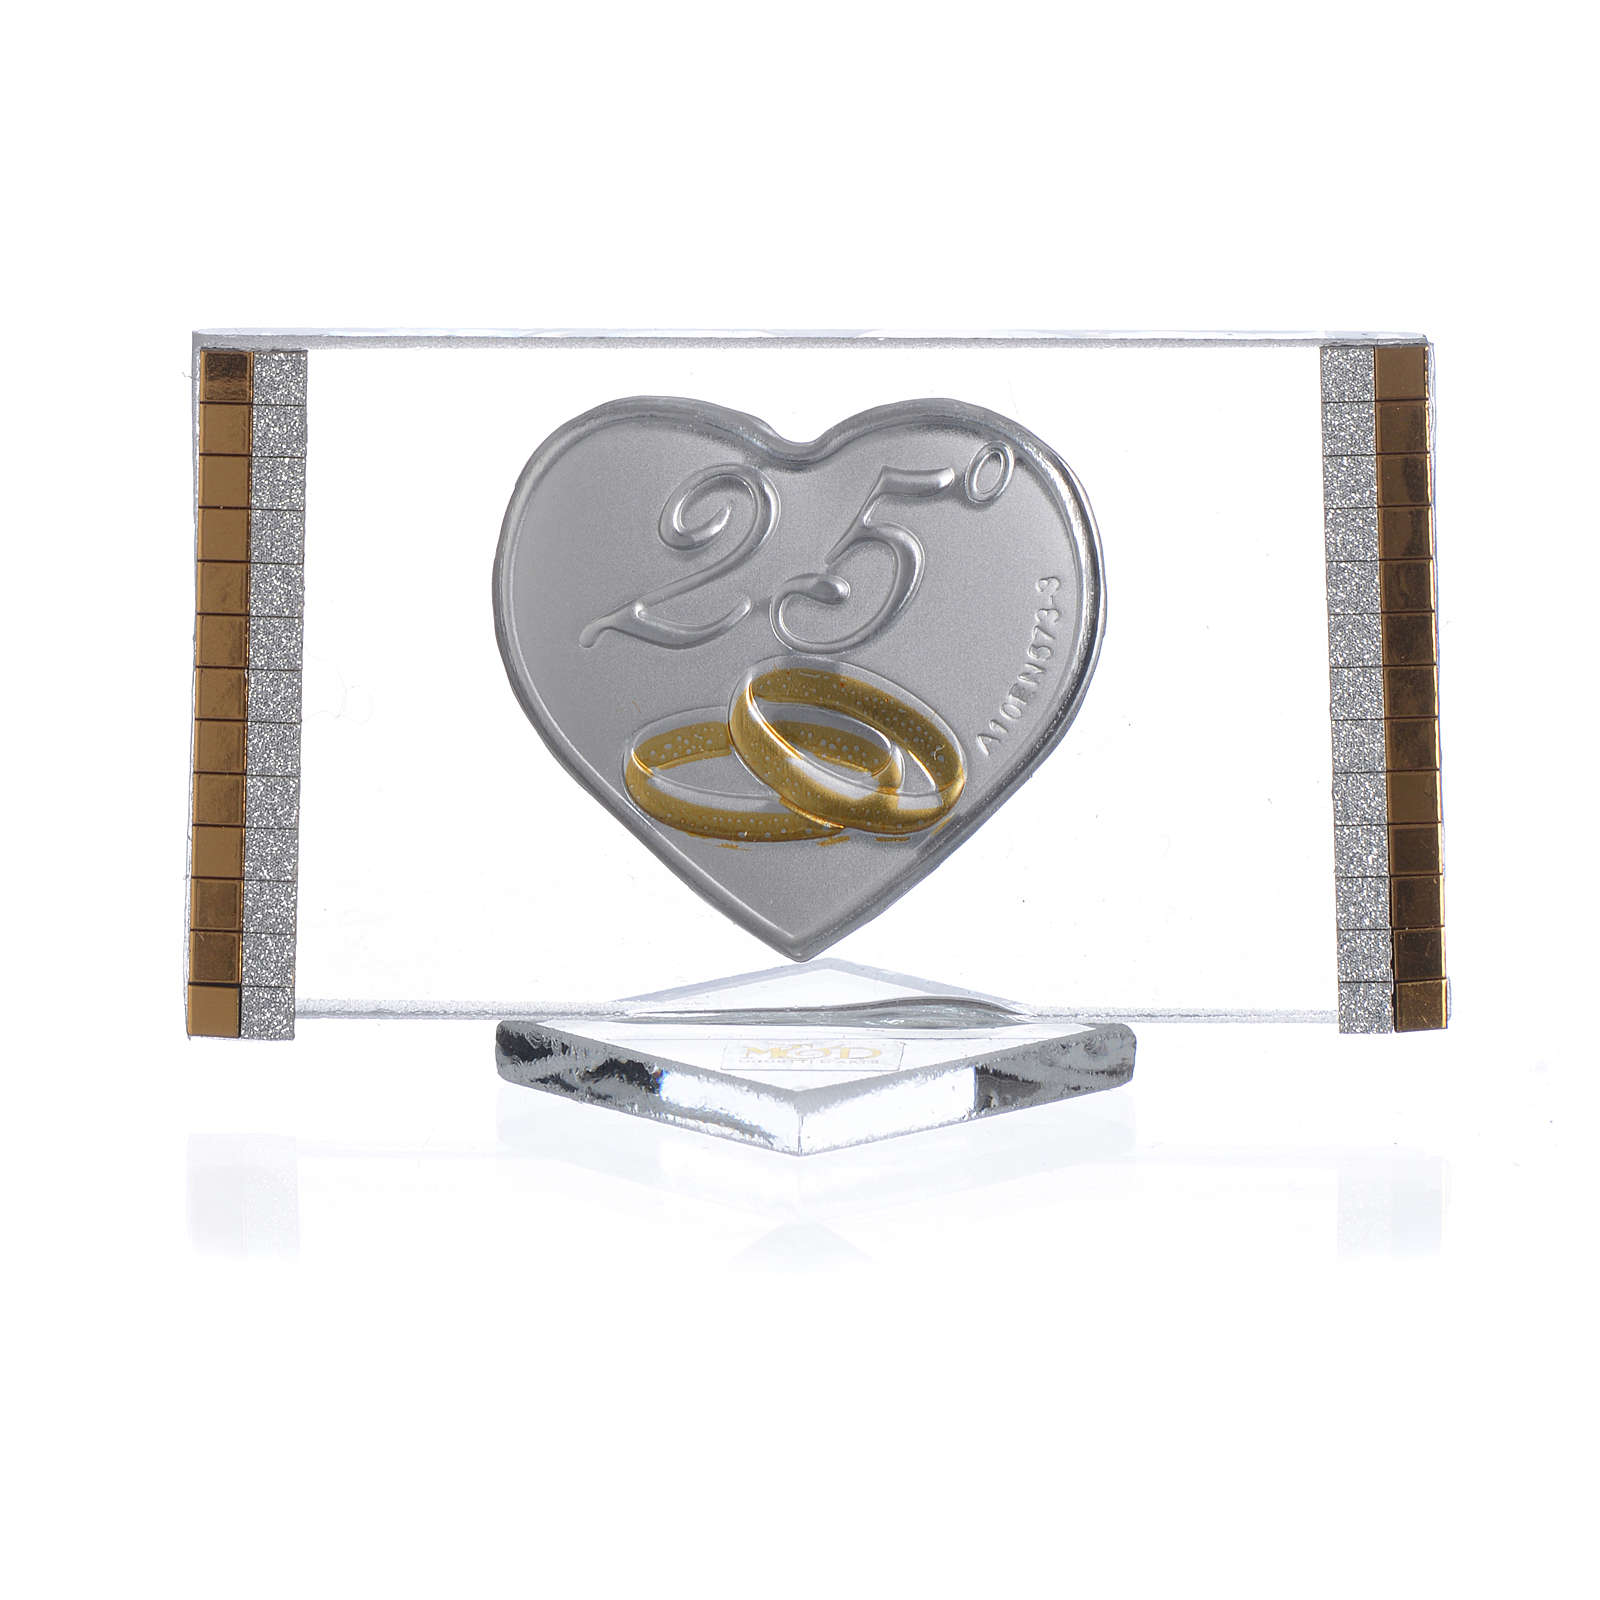 25 year anniversary favour, picture measuring 4.5x7cm 3